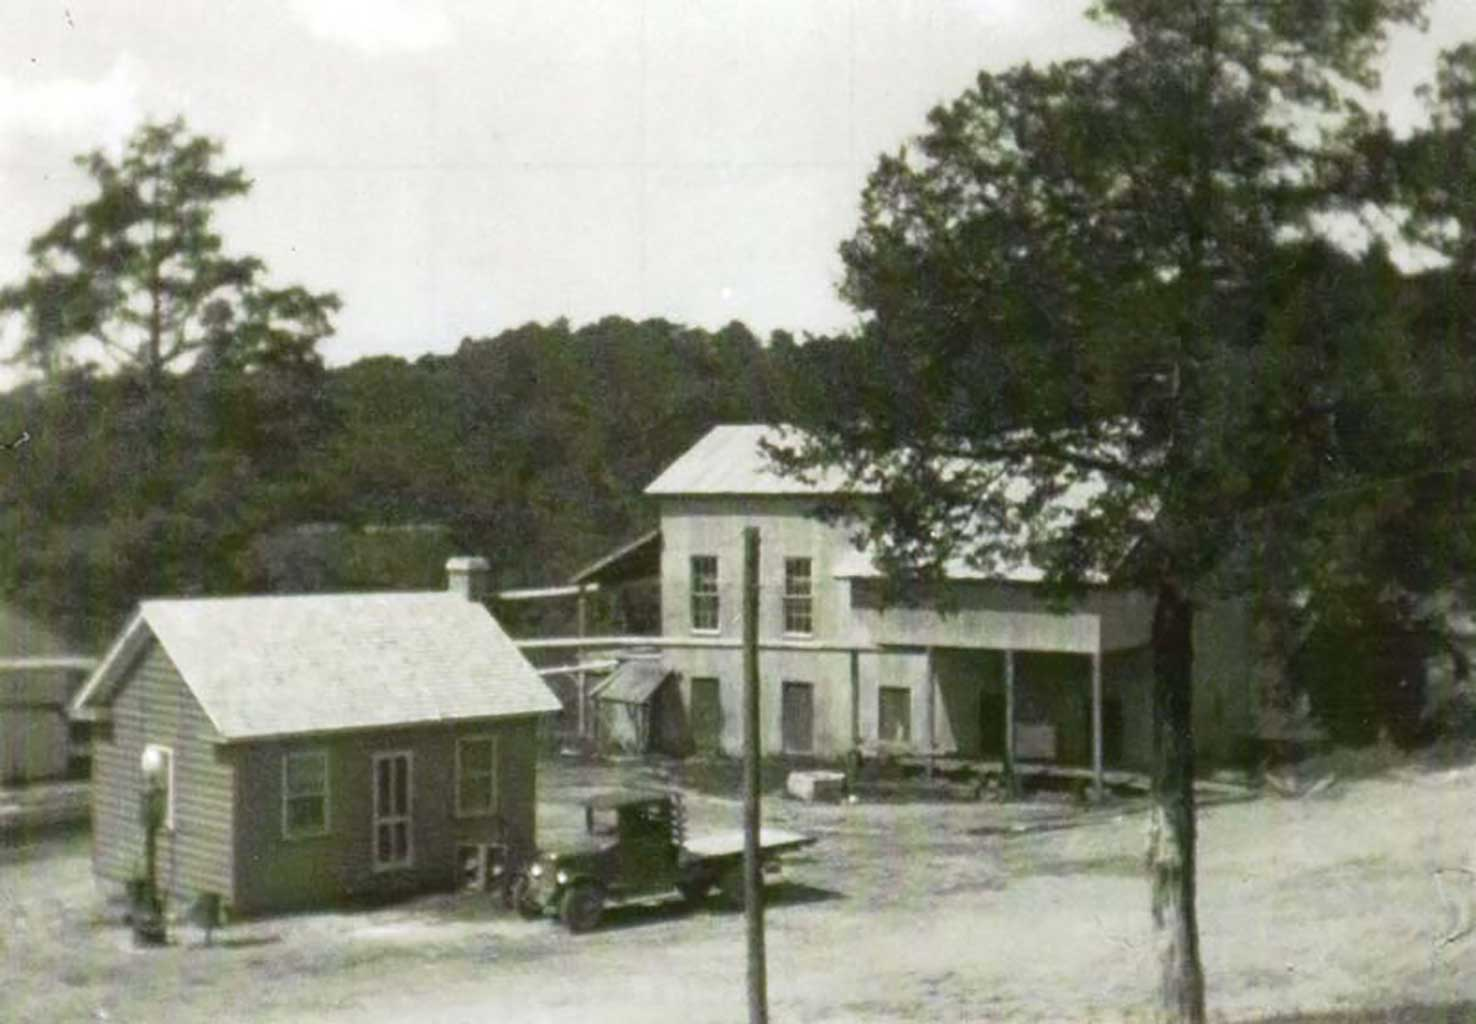 klc-office-and-cotton-gil-c-1936-img270